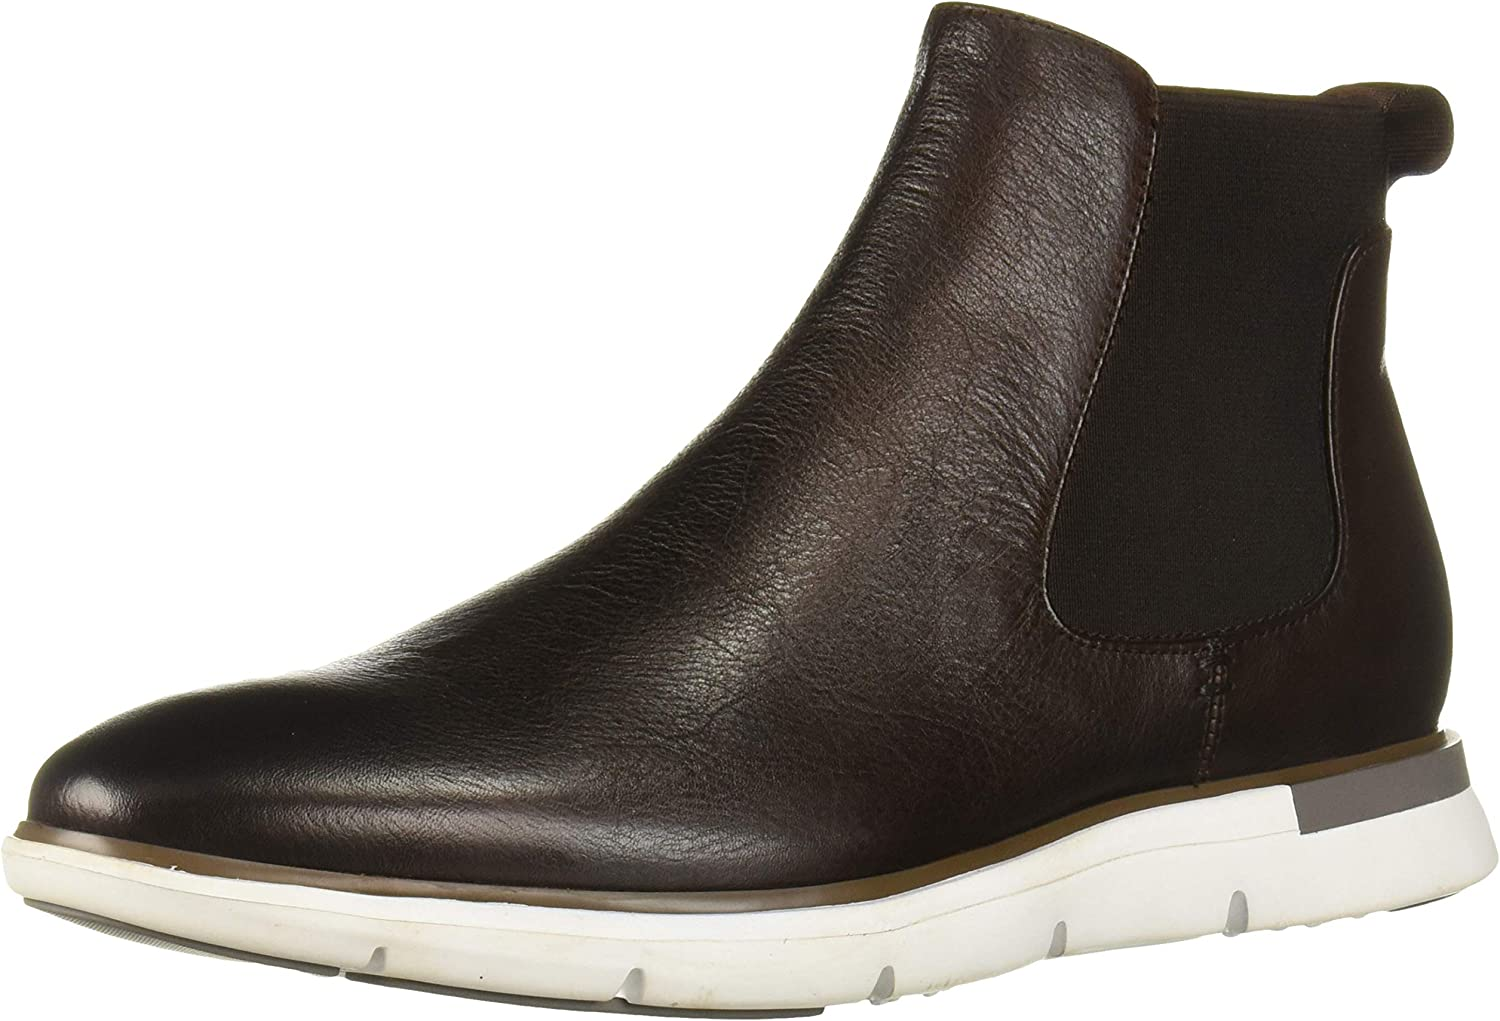 Kenneth Cole New York Boot Men's Reservation 2021new shipping free Dover Chelsea